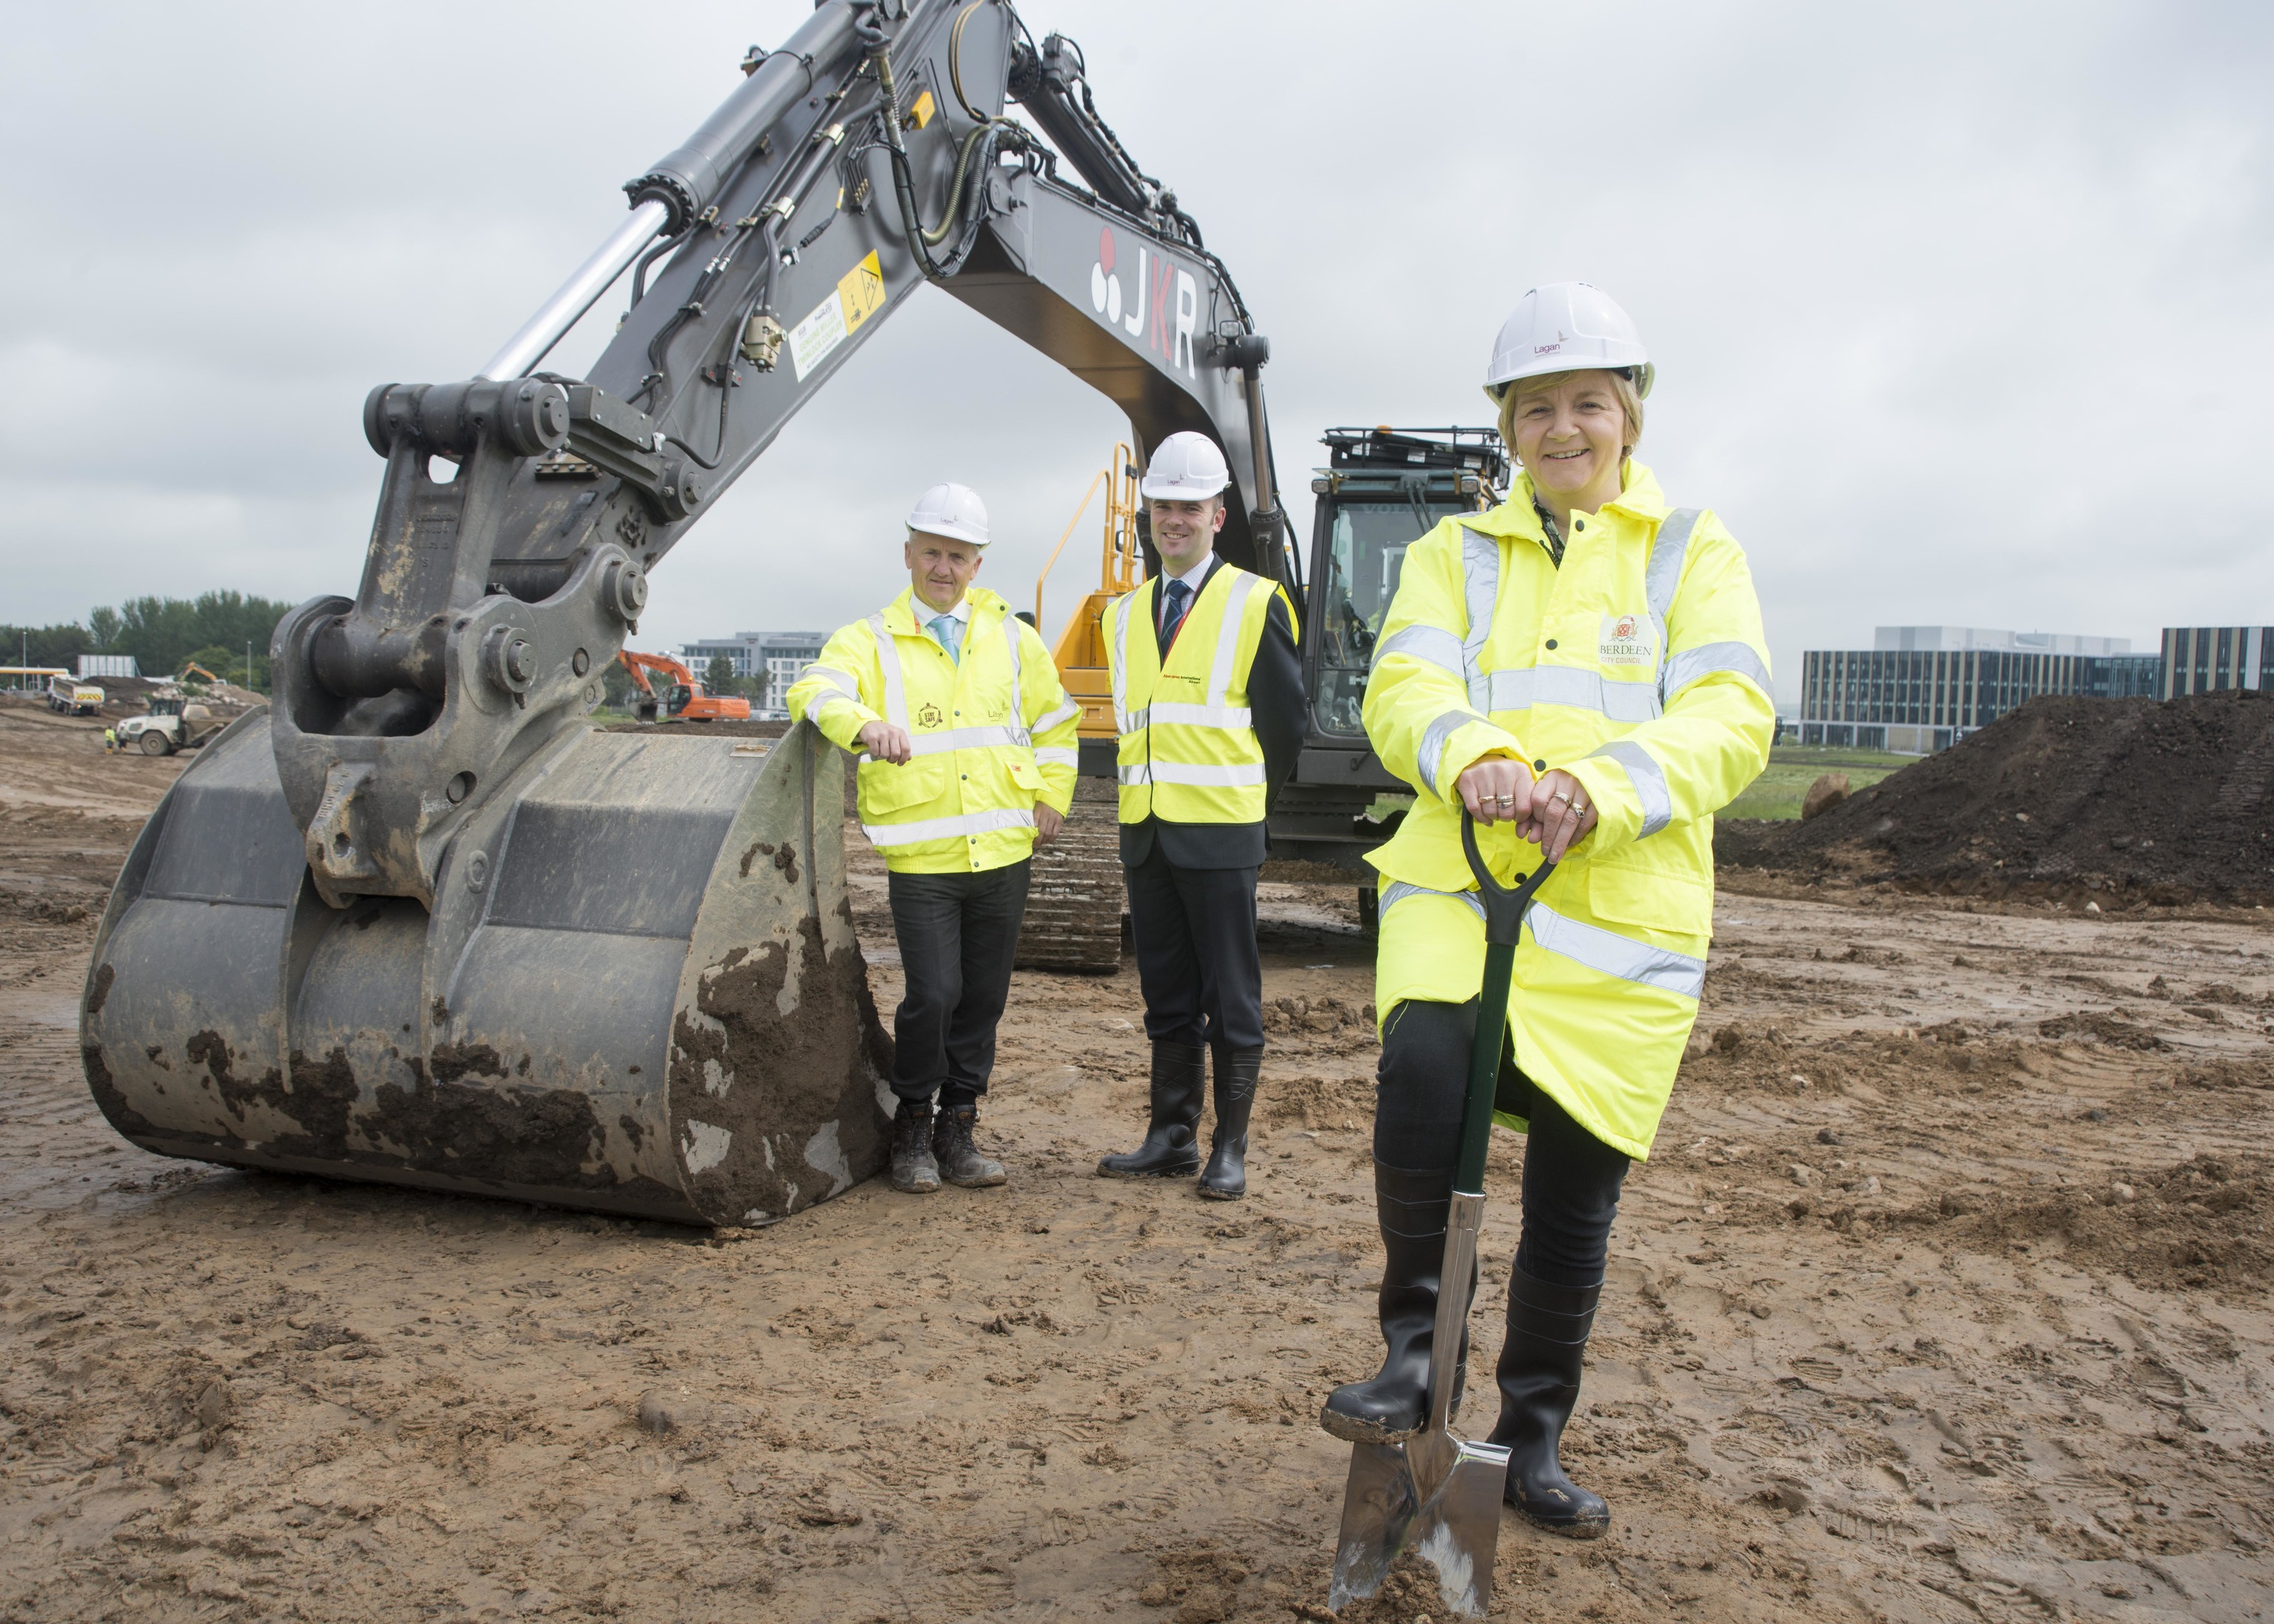 25/06/15   Aberdeen City Council Leader Councillor Jenny Laing, Lagan Construction Group Regional Director Scotland and Northern England Gavin McKevitt, and Aberdeen International Airport Operations Director Ben Dempster.